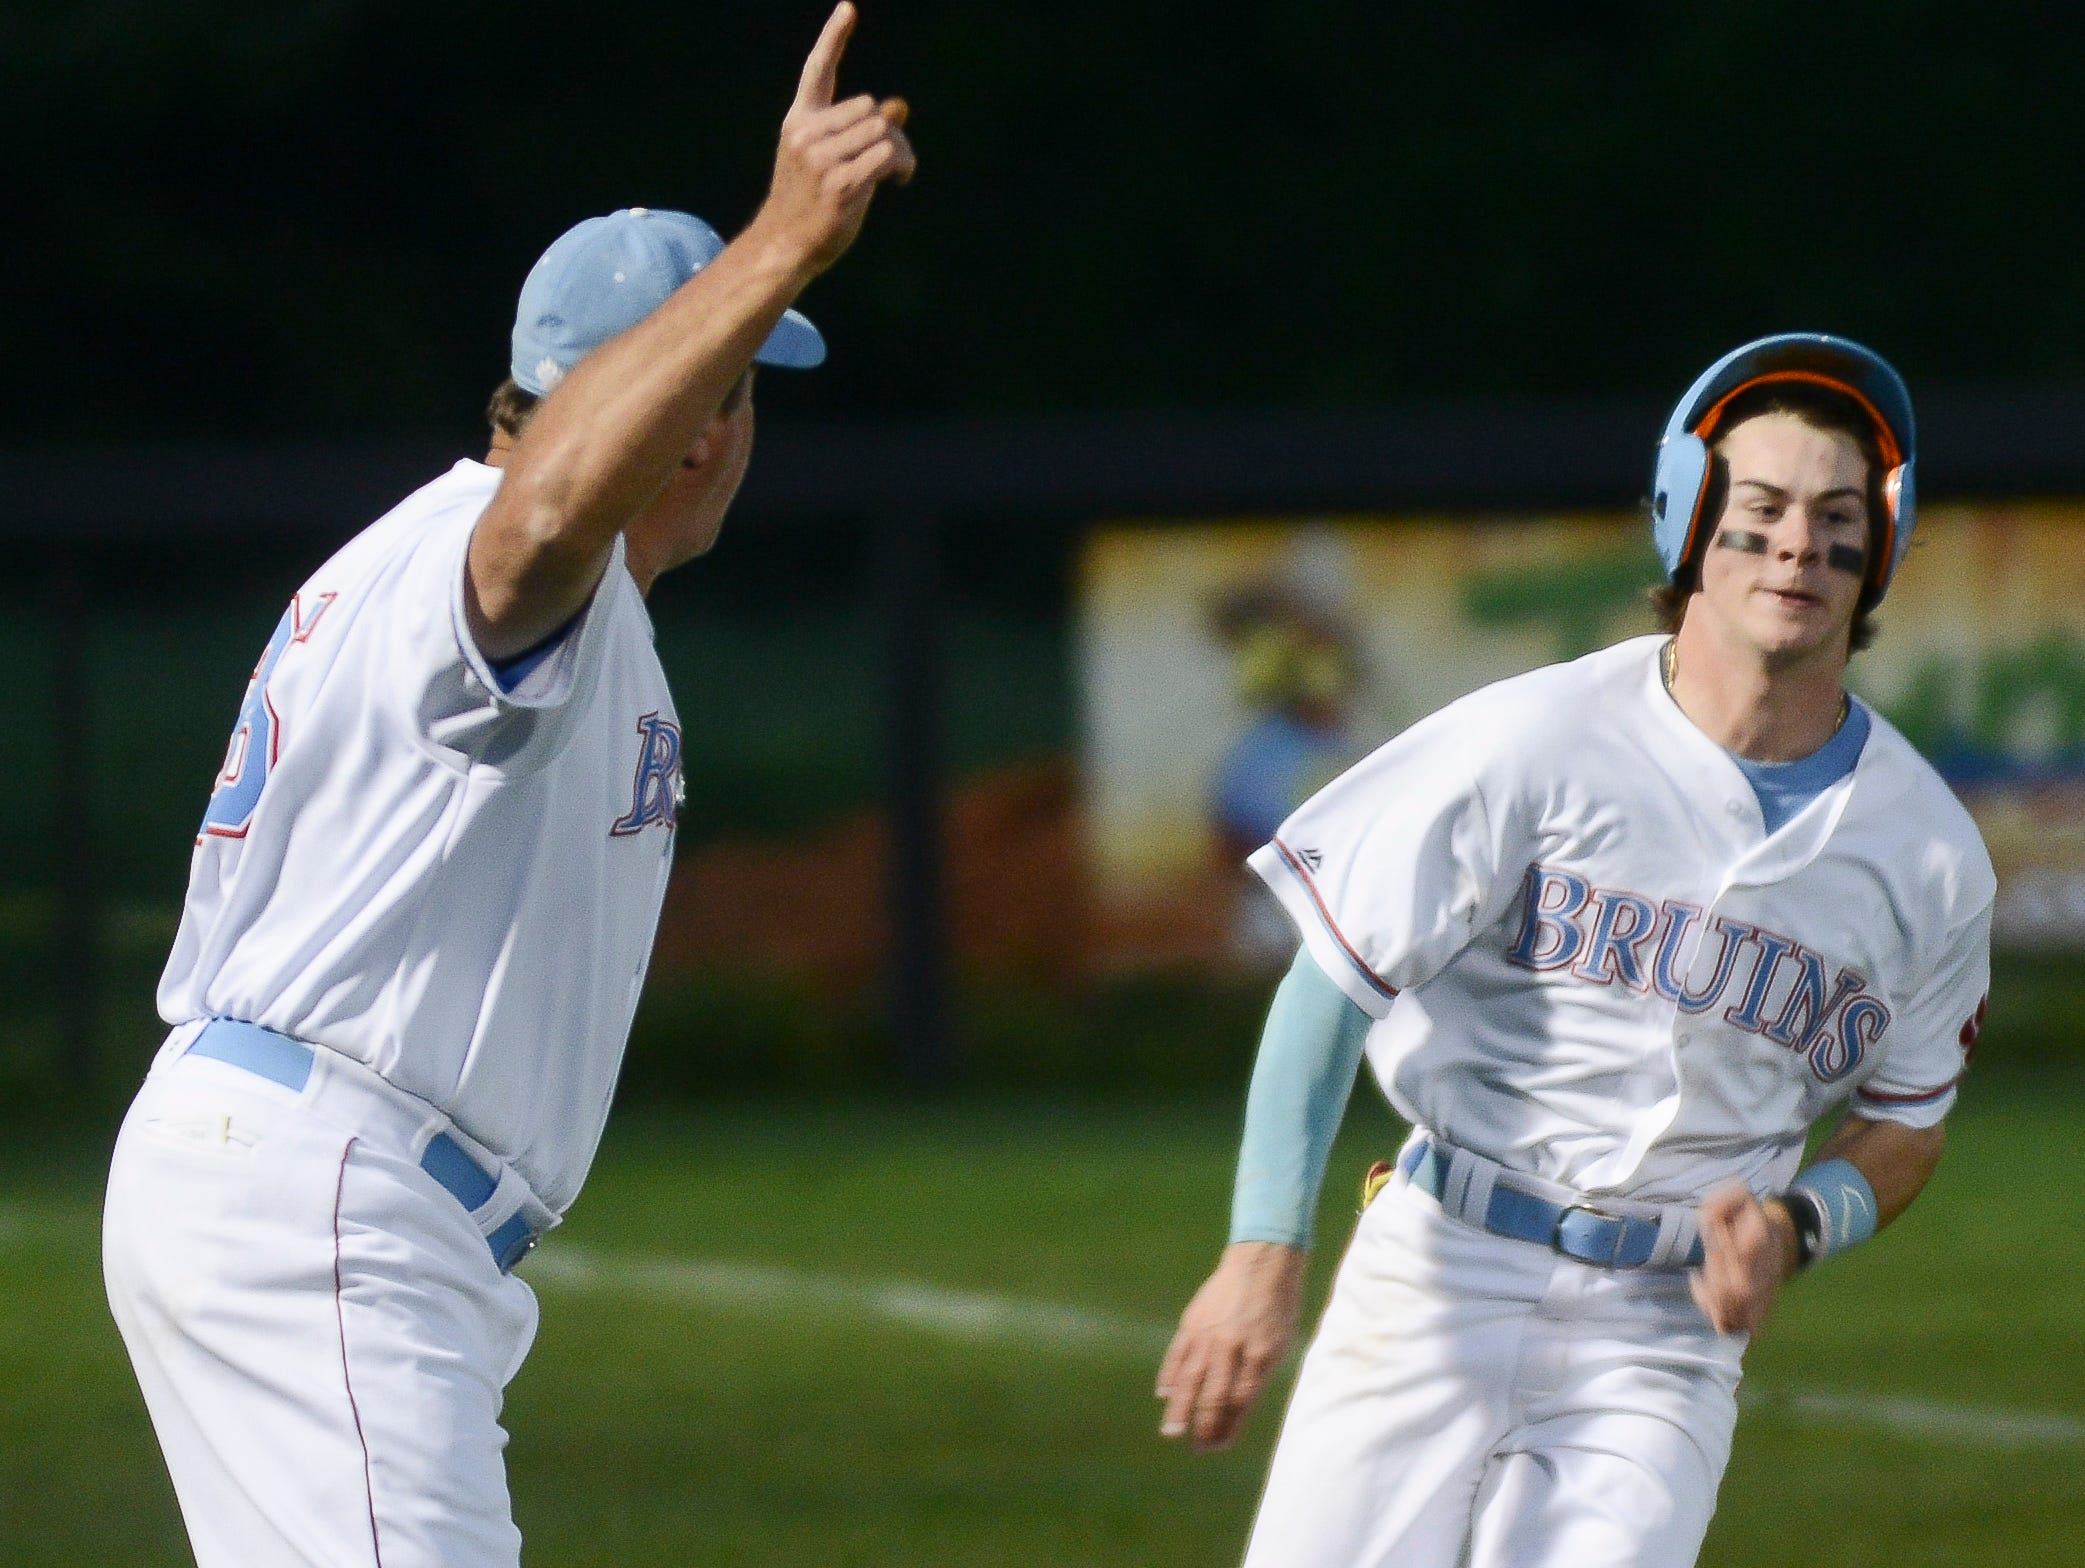 USJ's Logan Carey rounds third base to head home in a game against Tipton-Rosemark earlier this season.